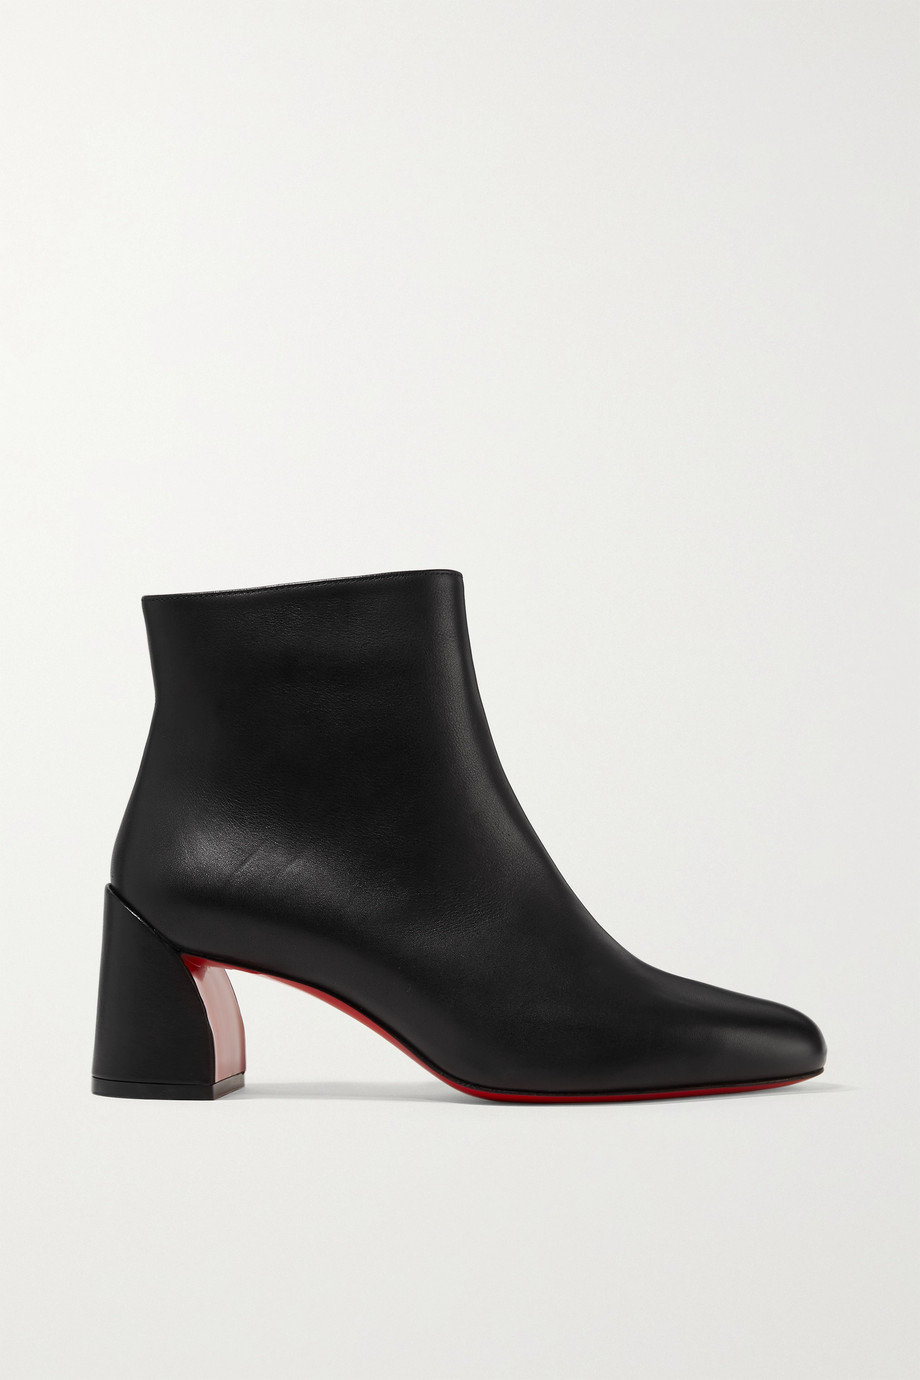 CHRISTIAN LOUBOUTIN Turela 55 leather ankle boots